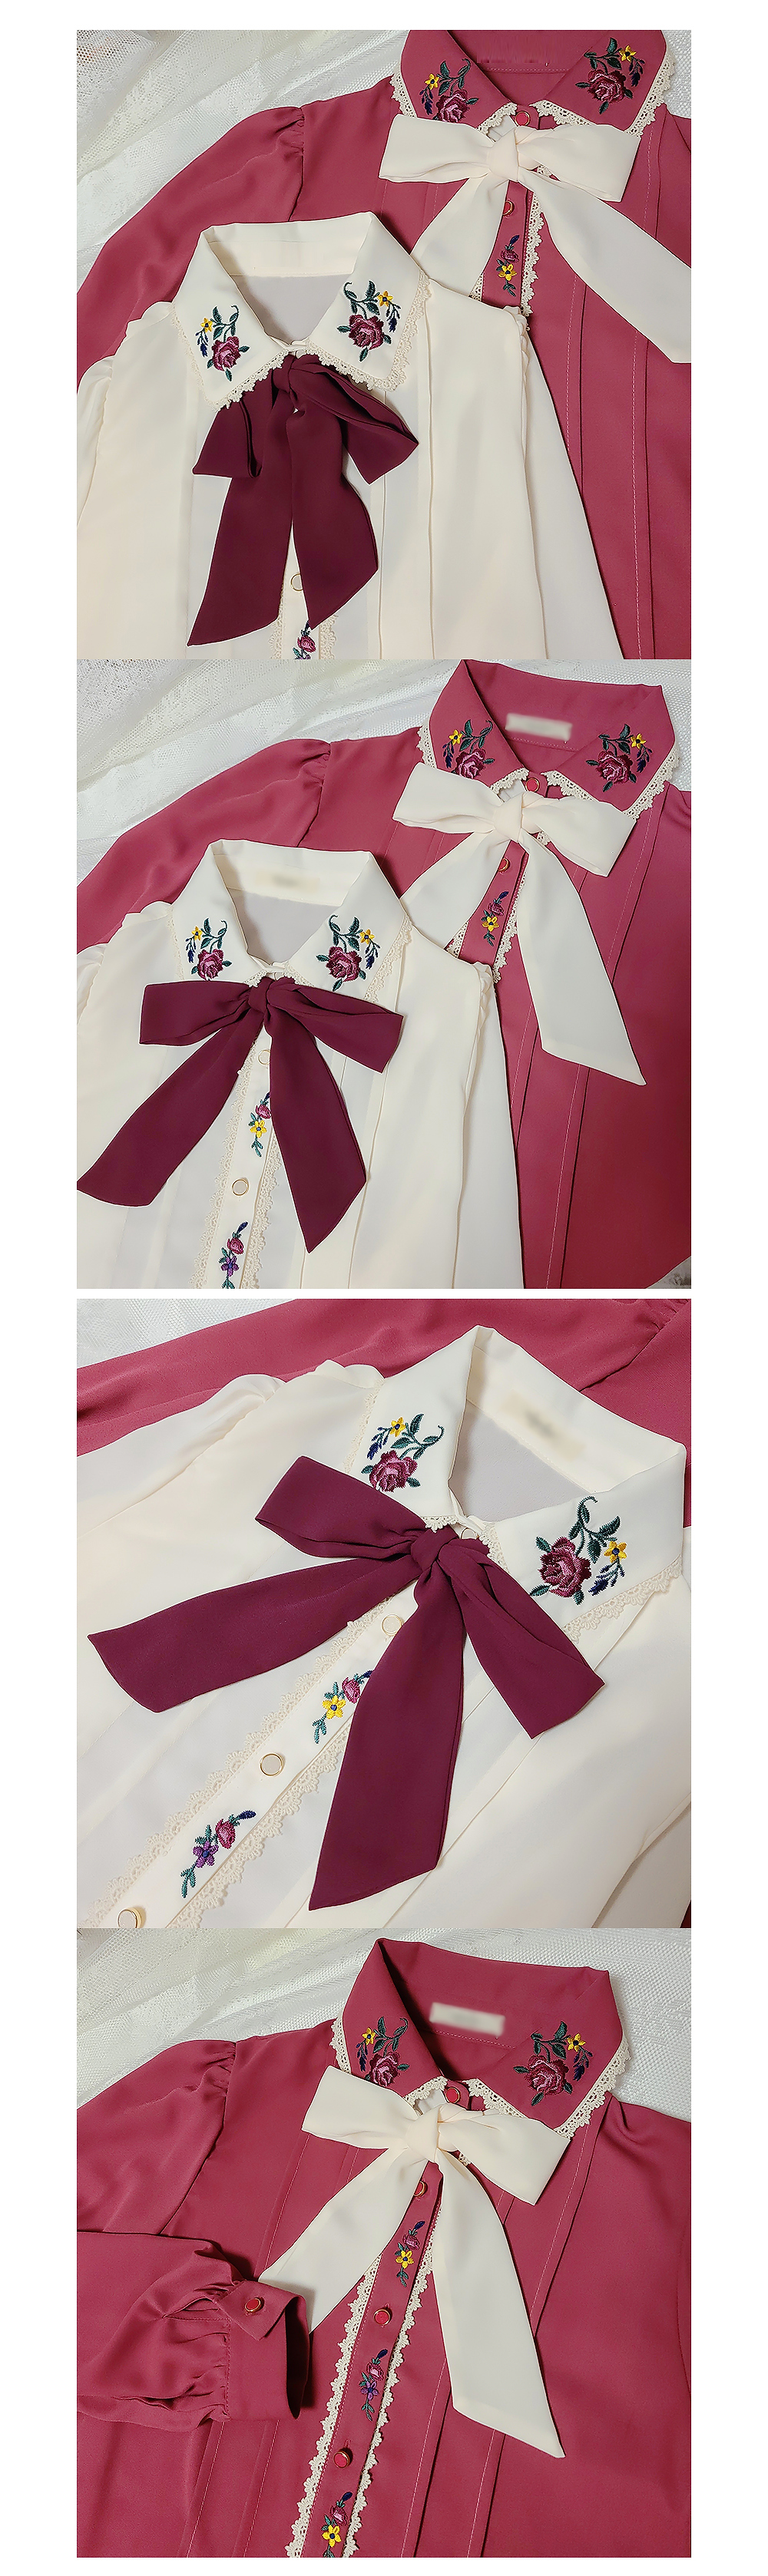 Evening Floral Embroidery Ribbon Blouse 2color